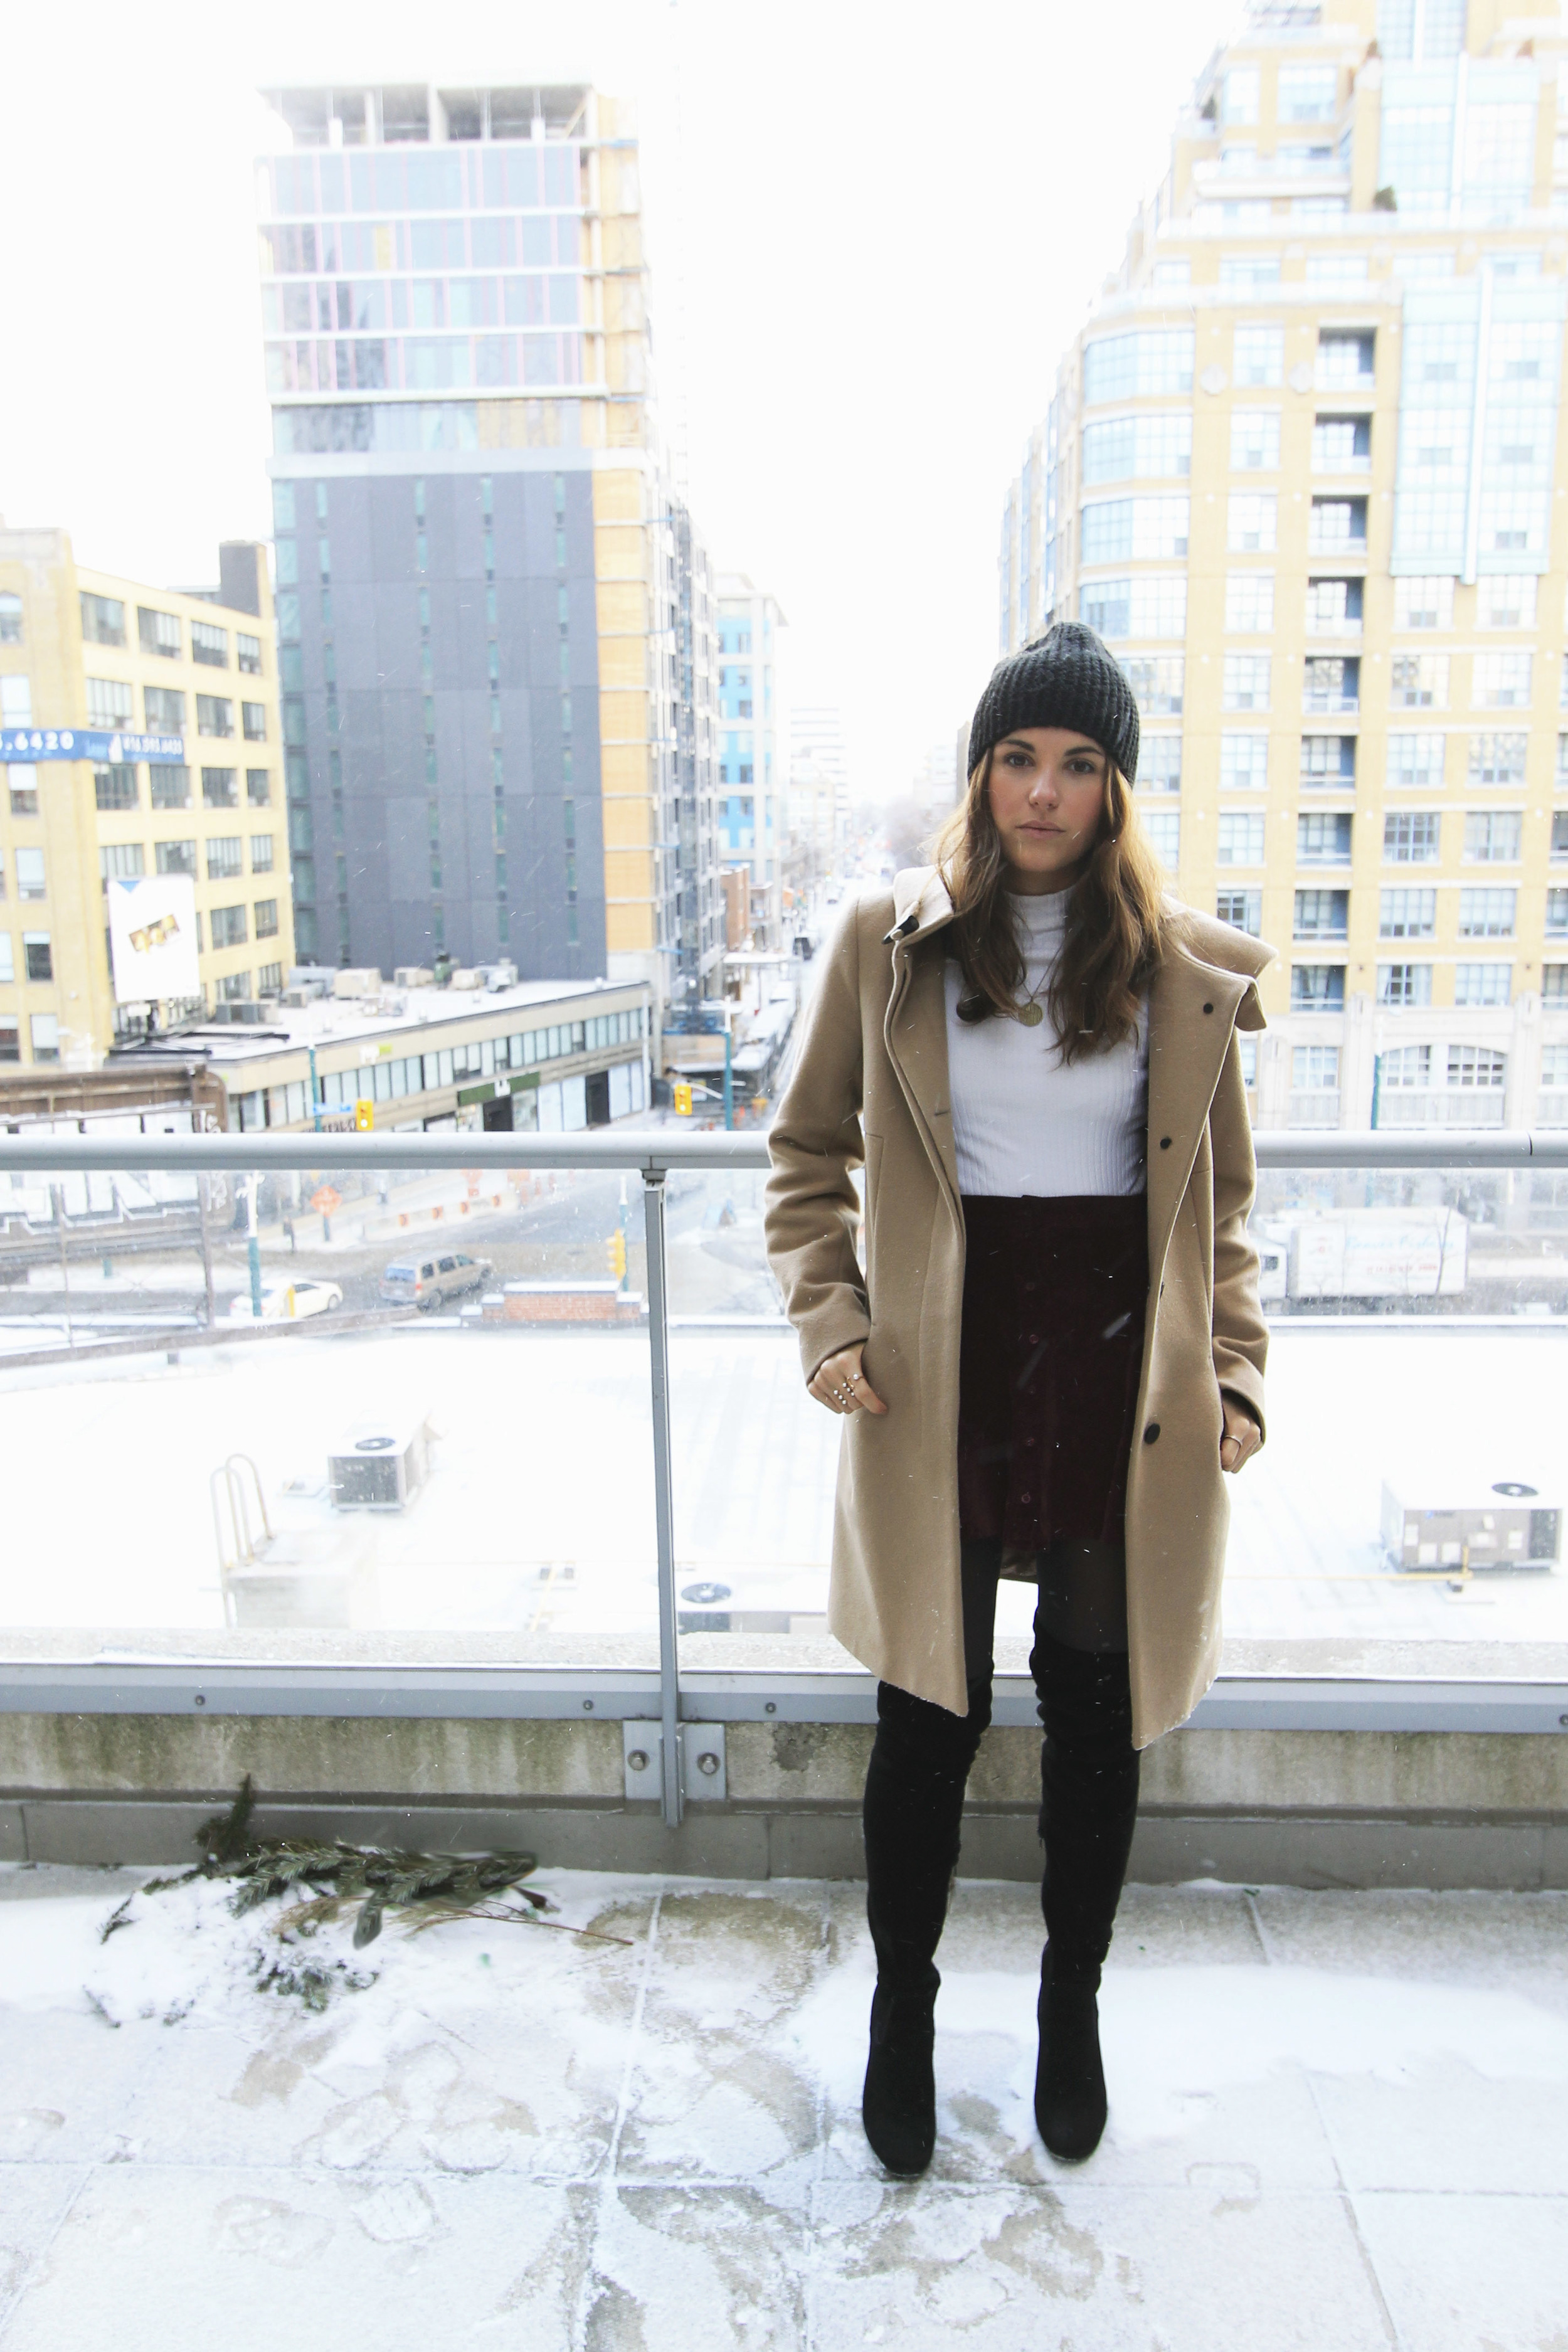 winter-outfit-style-inspiration-canada-toronto-aritzia-coat-thigh-high-over-the-knee-boots.jpg